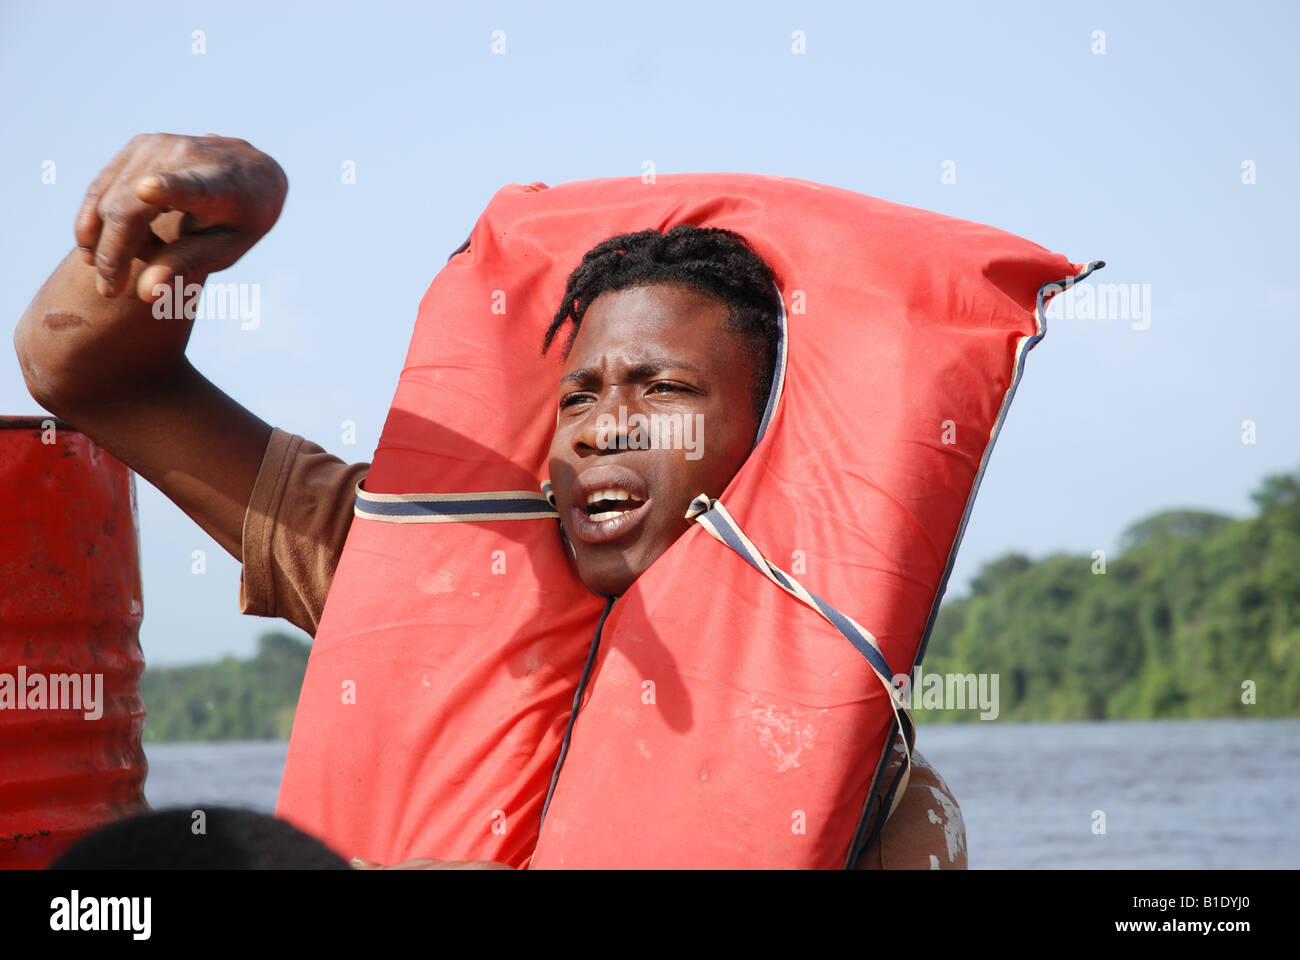 Down the Maroni river young black man with a life jacket around his head - Stock Image